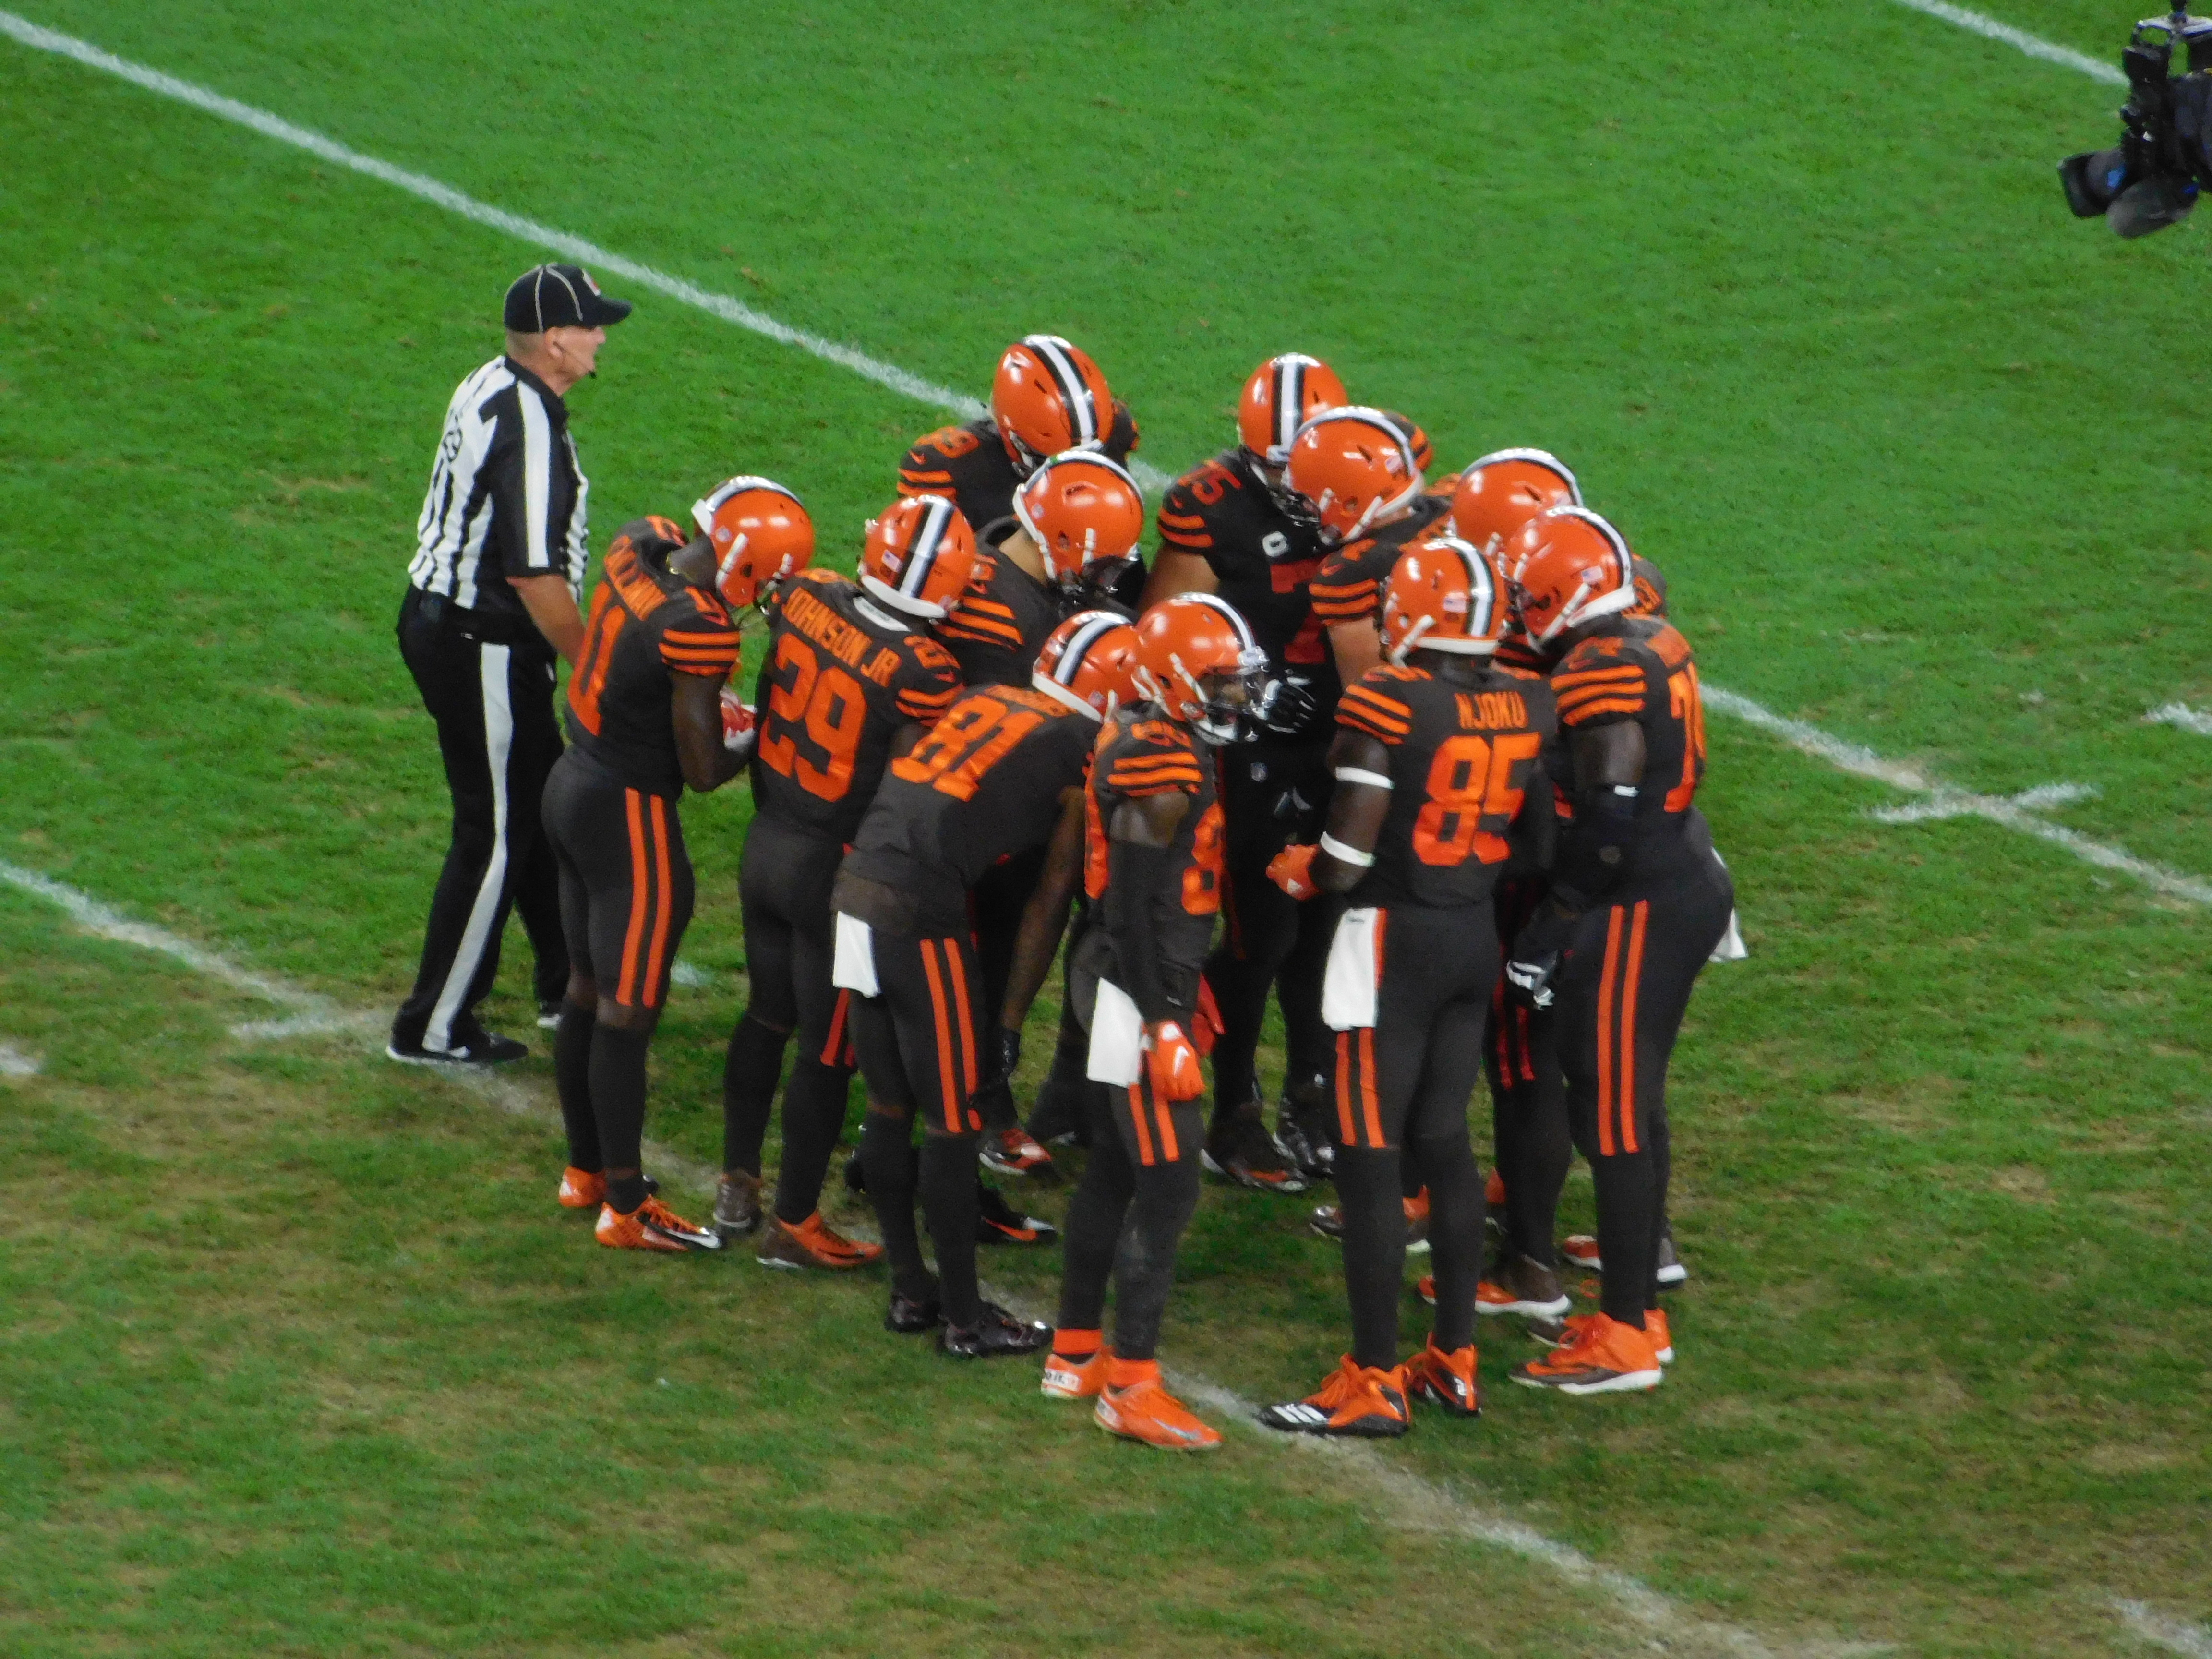 Browns Color Rush 2020.Browns Color Rush Jerseys Now The Team S Primary Uniform